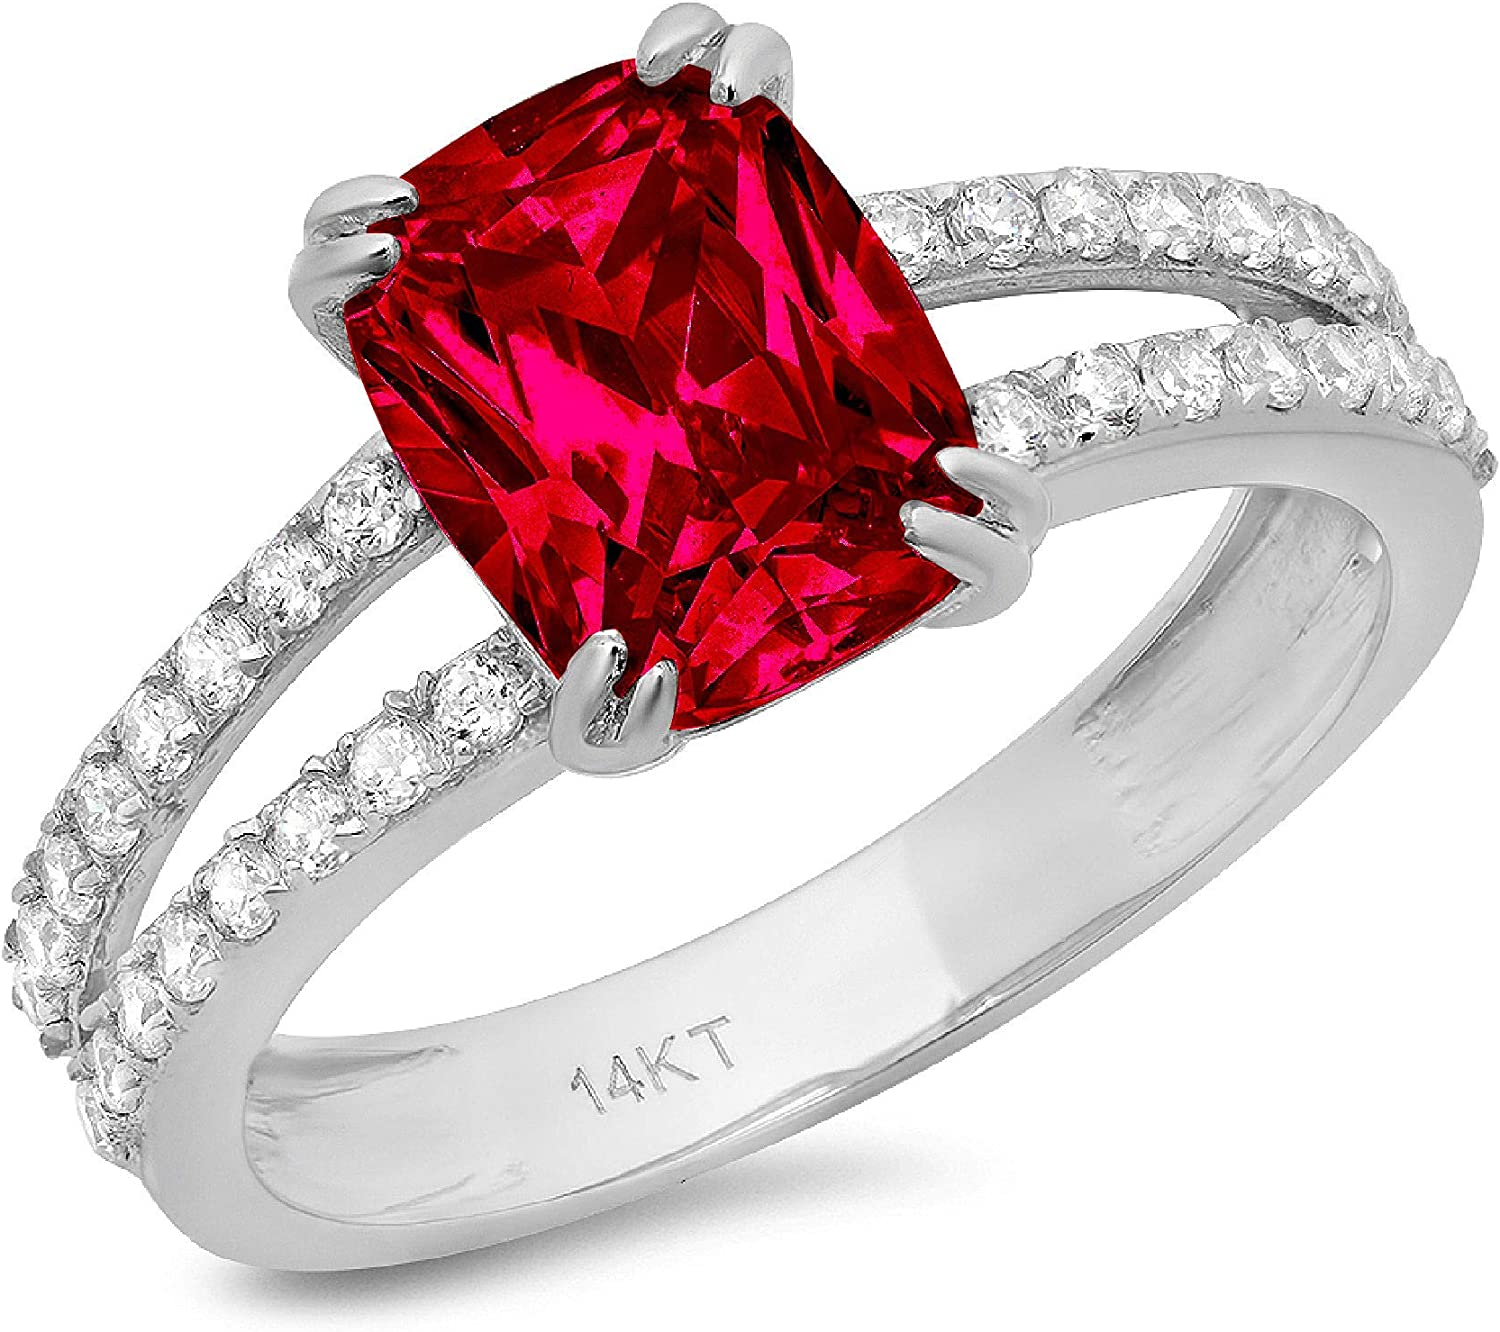 3.55 3.5 ct Brilliant Cushion Shape Solitaire with accent Stunning Genuine Flawless Simulated Pink Tourmaline Modern Promise Statement Designer Ring 18k White Gold